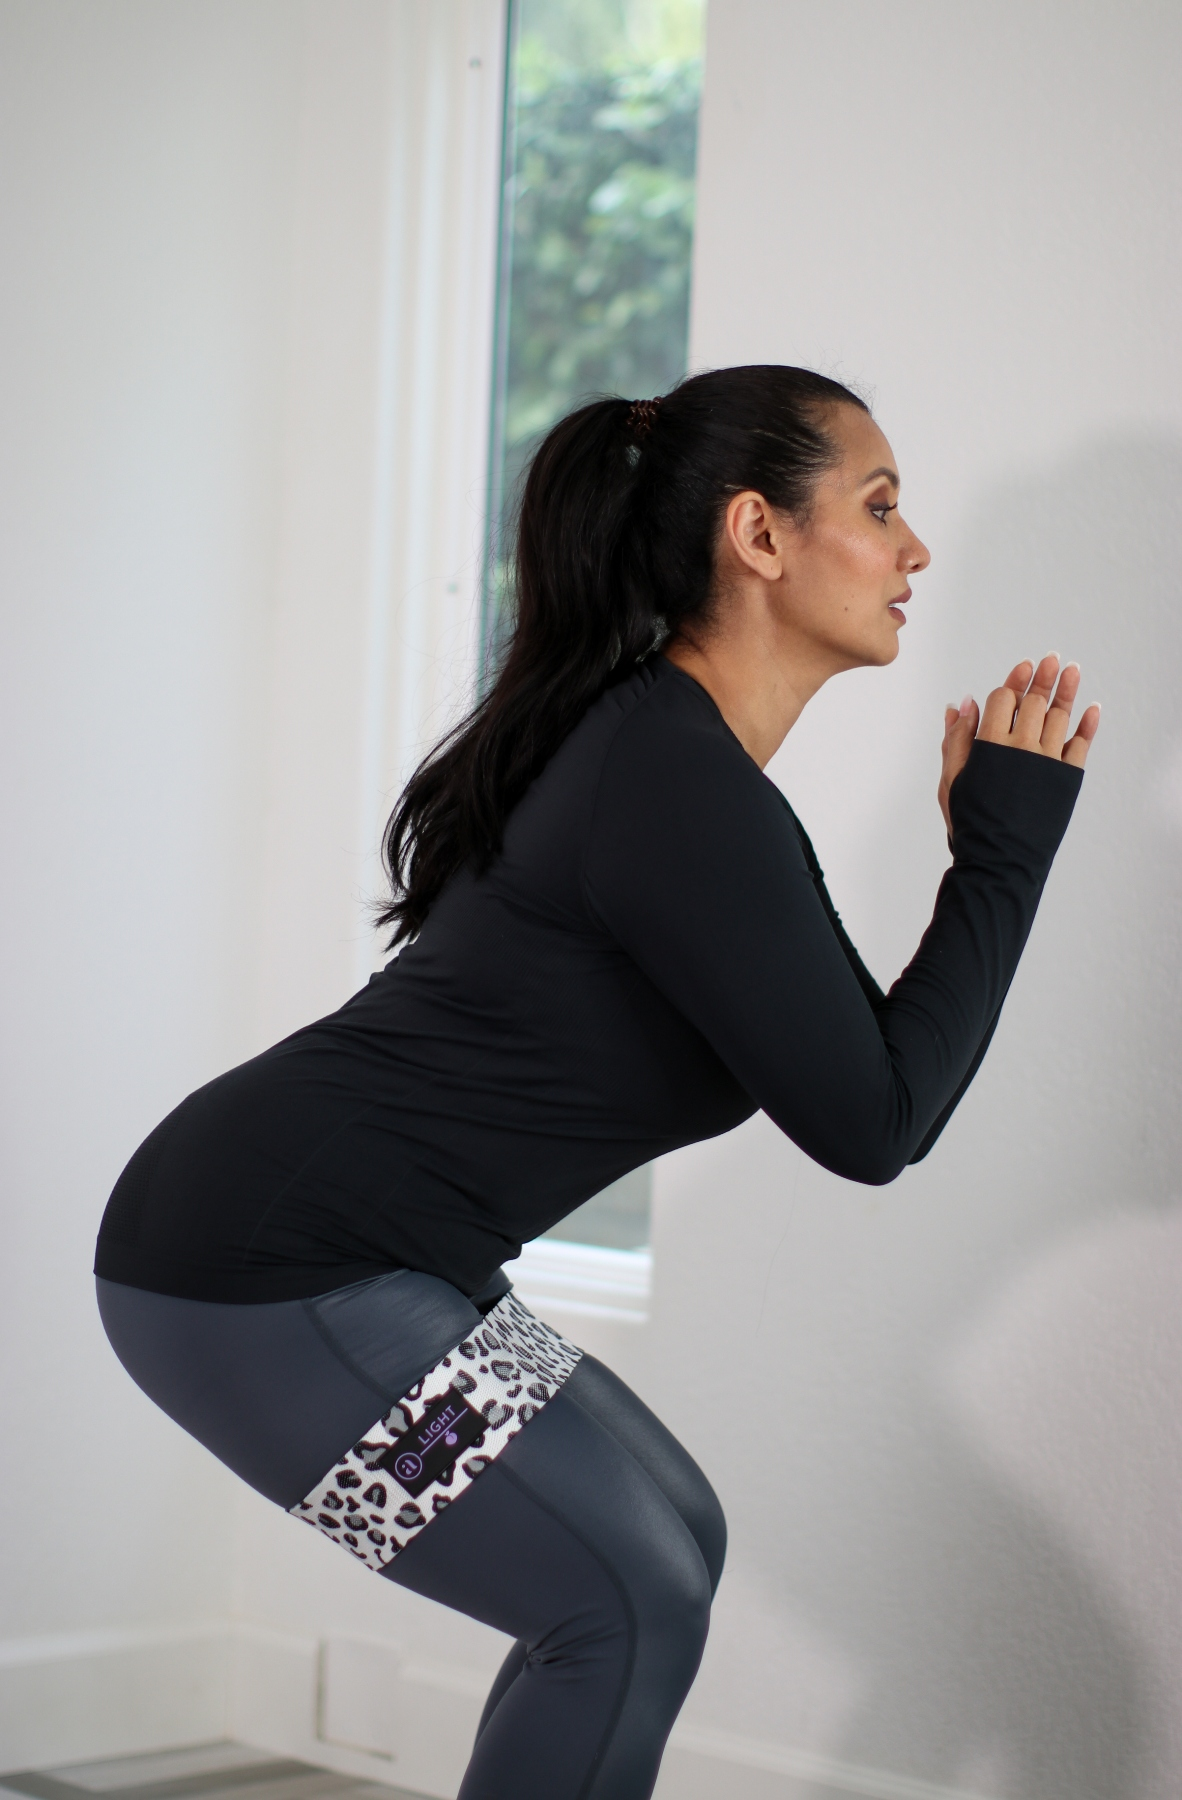 AJNA Wellbeing Booty Resistance Band _ Debbie Savage Asian American Fashion & Beauty Blogger